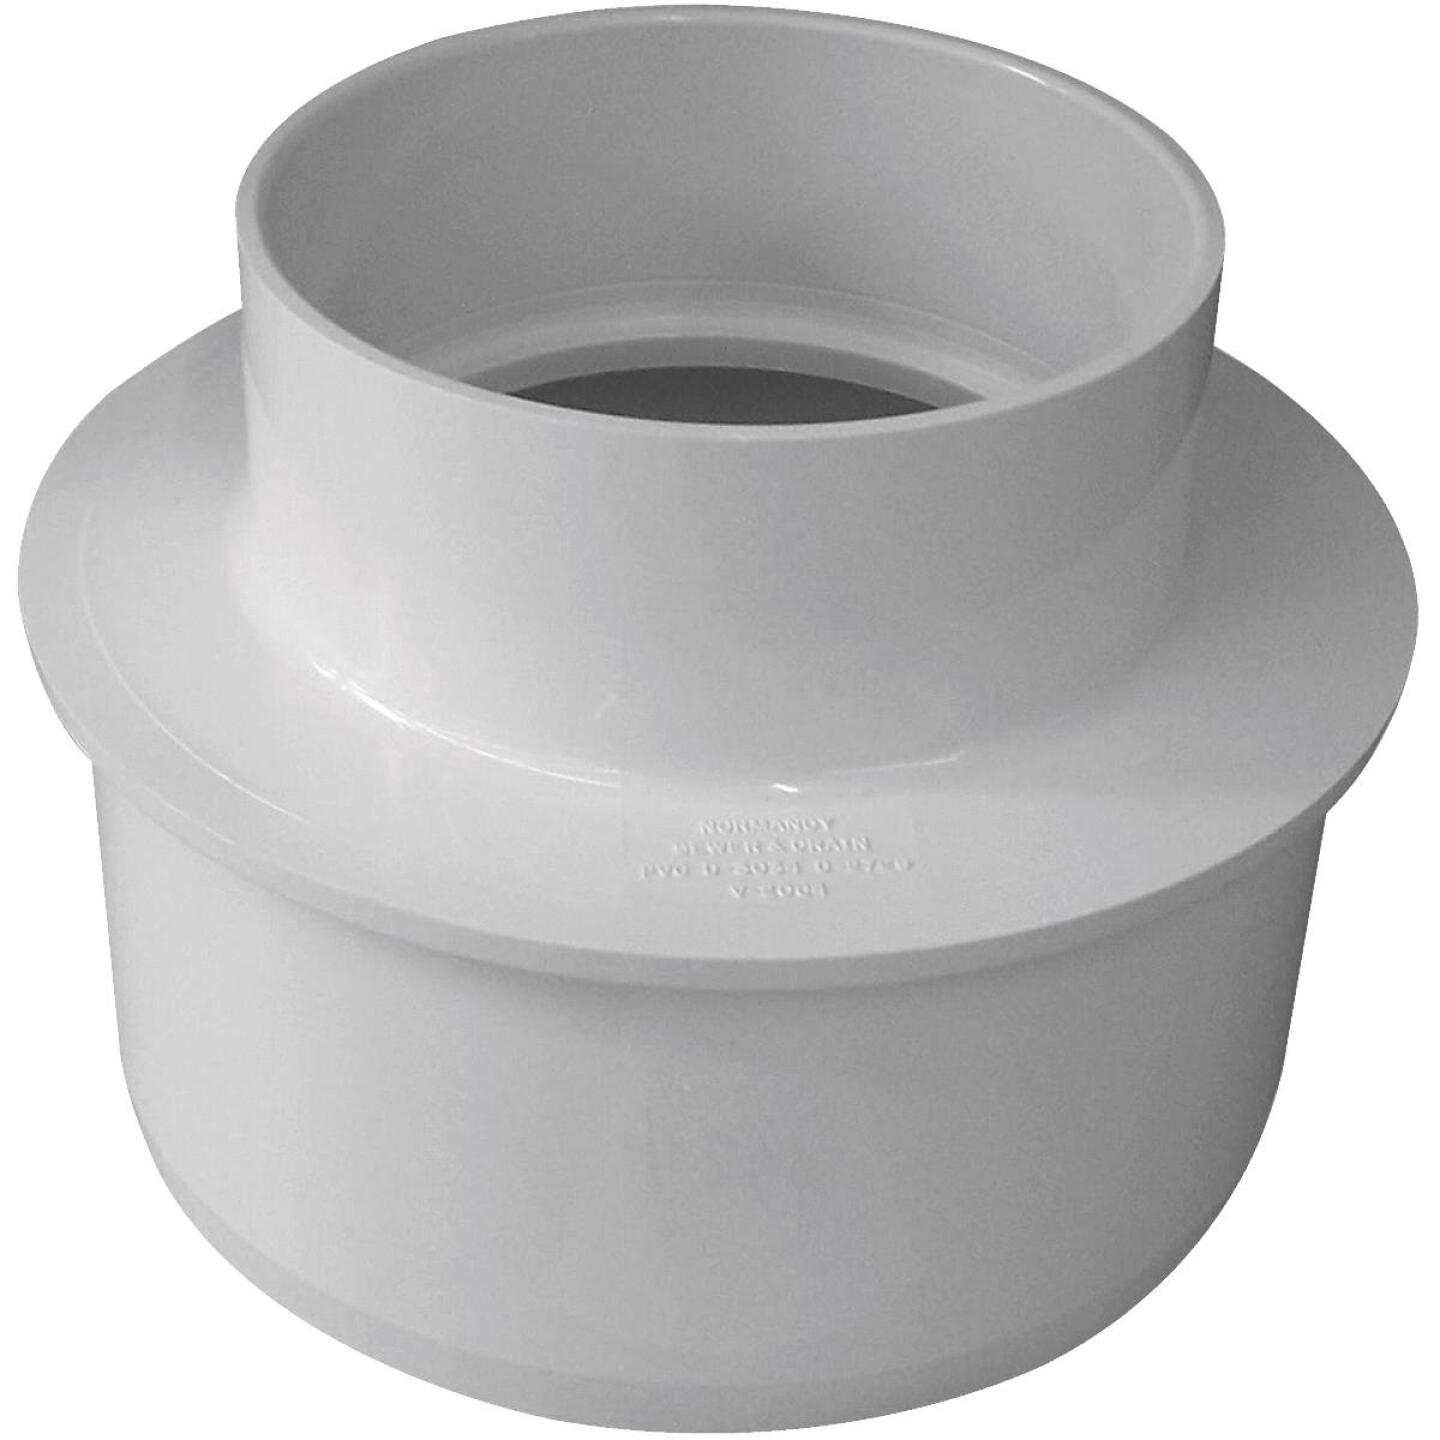 IPEX Canplas SDR 35 6 In. x 4 In. PVC Sewer and Drain Reducer Bushing Image 1